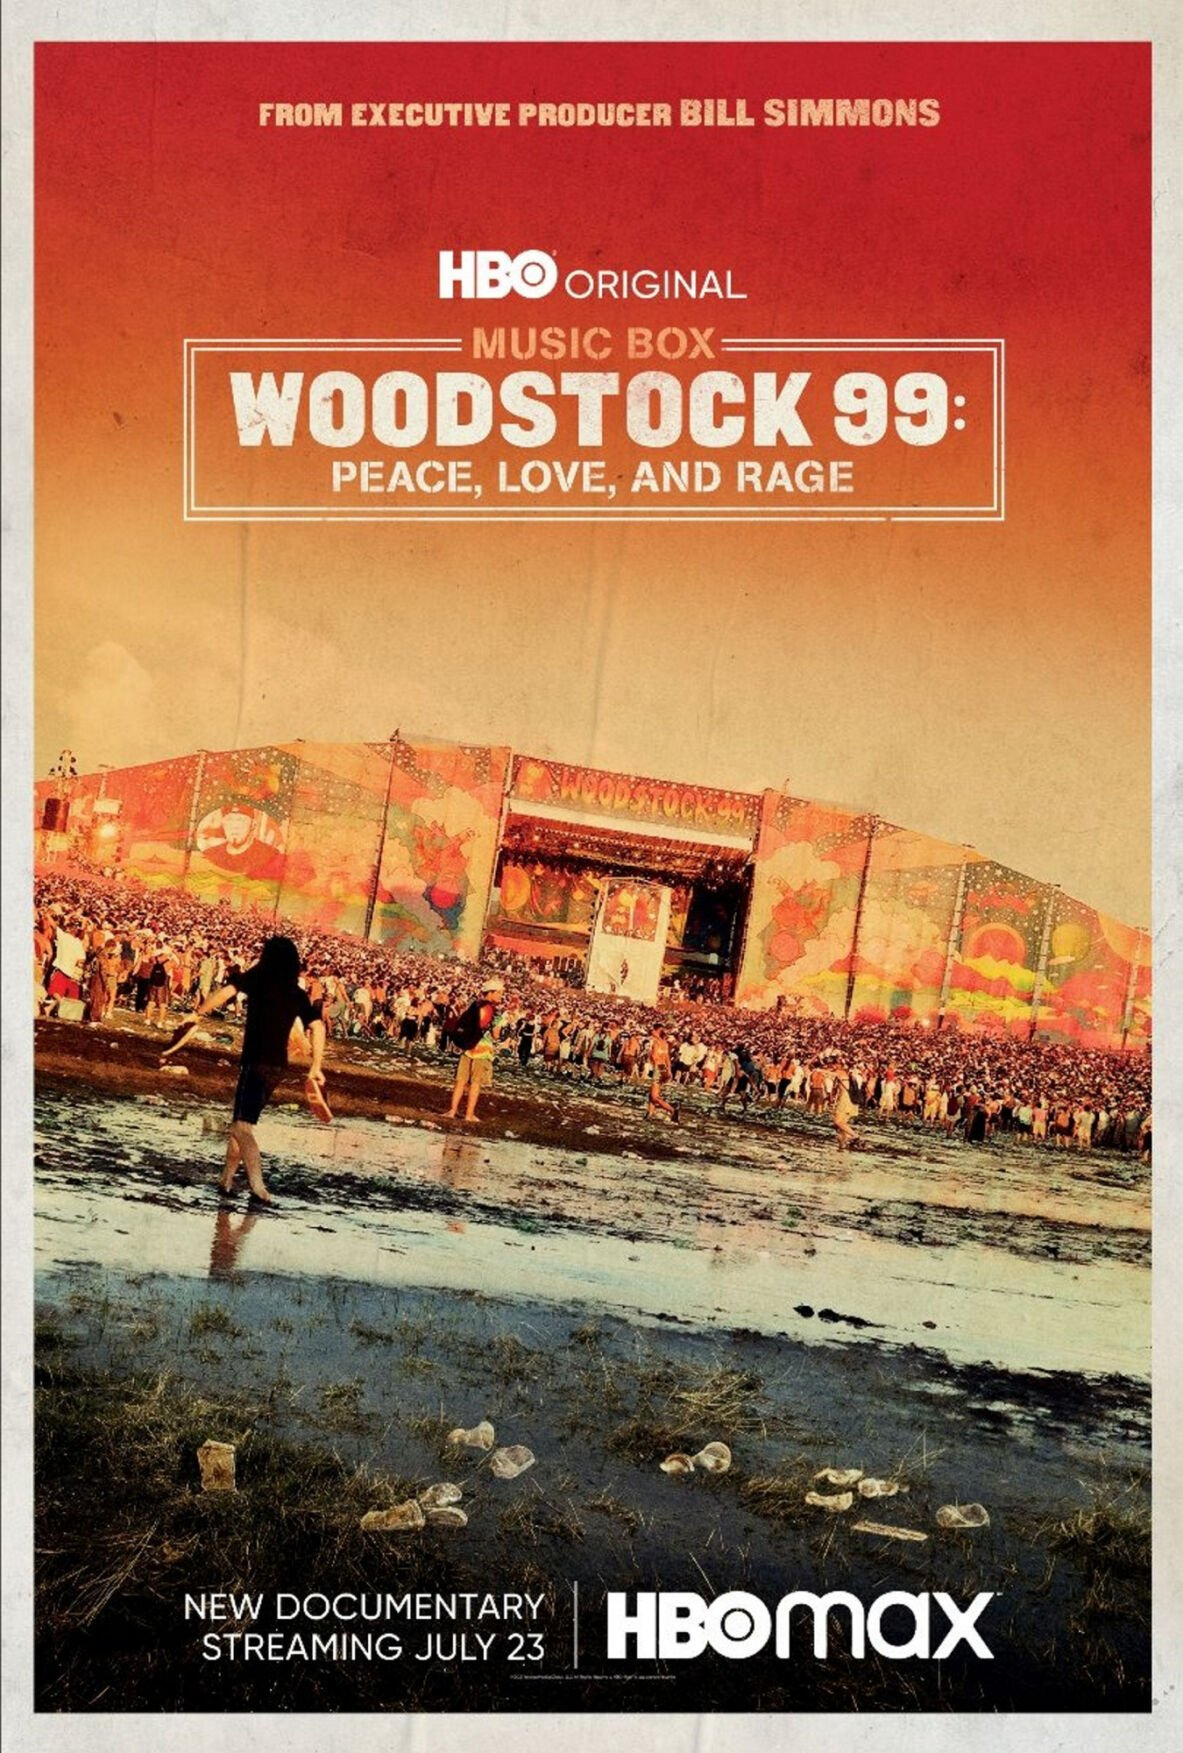 New film explores what went wrong in Woodstock 99